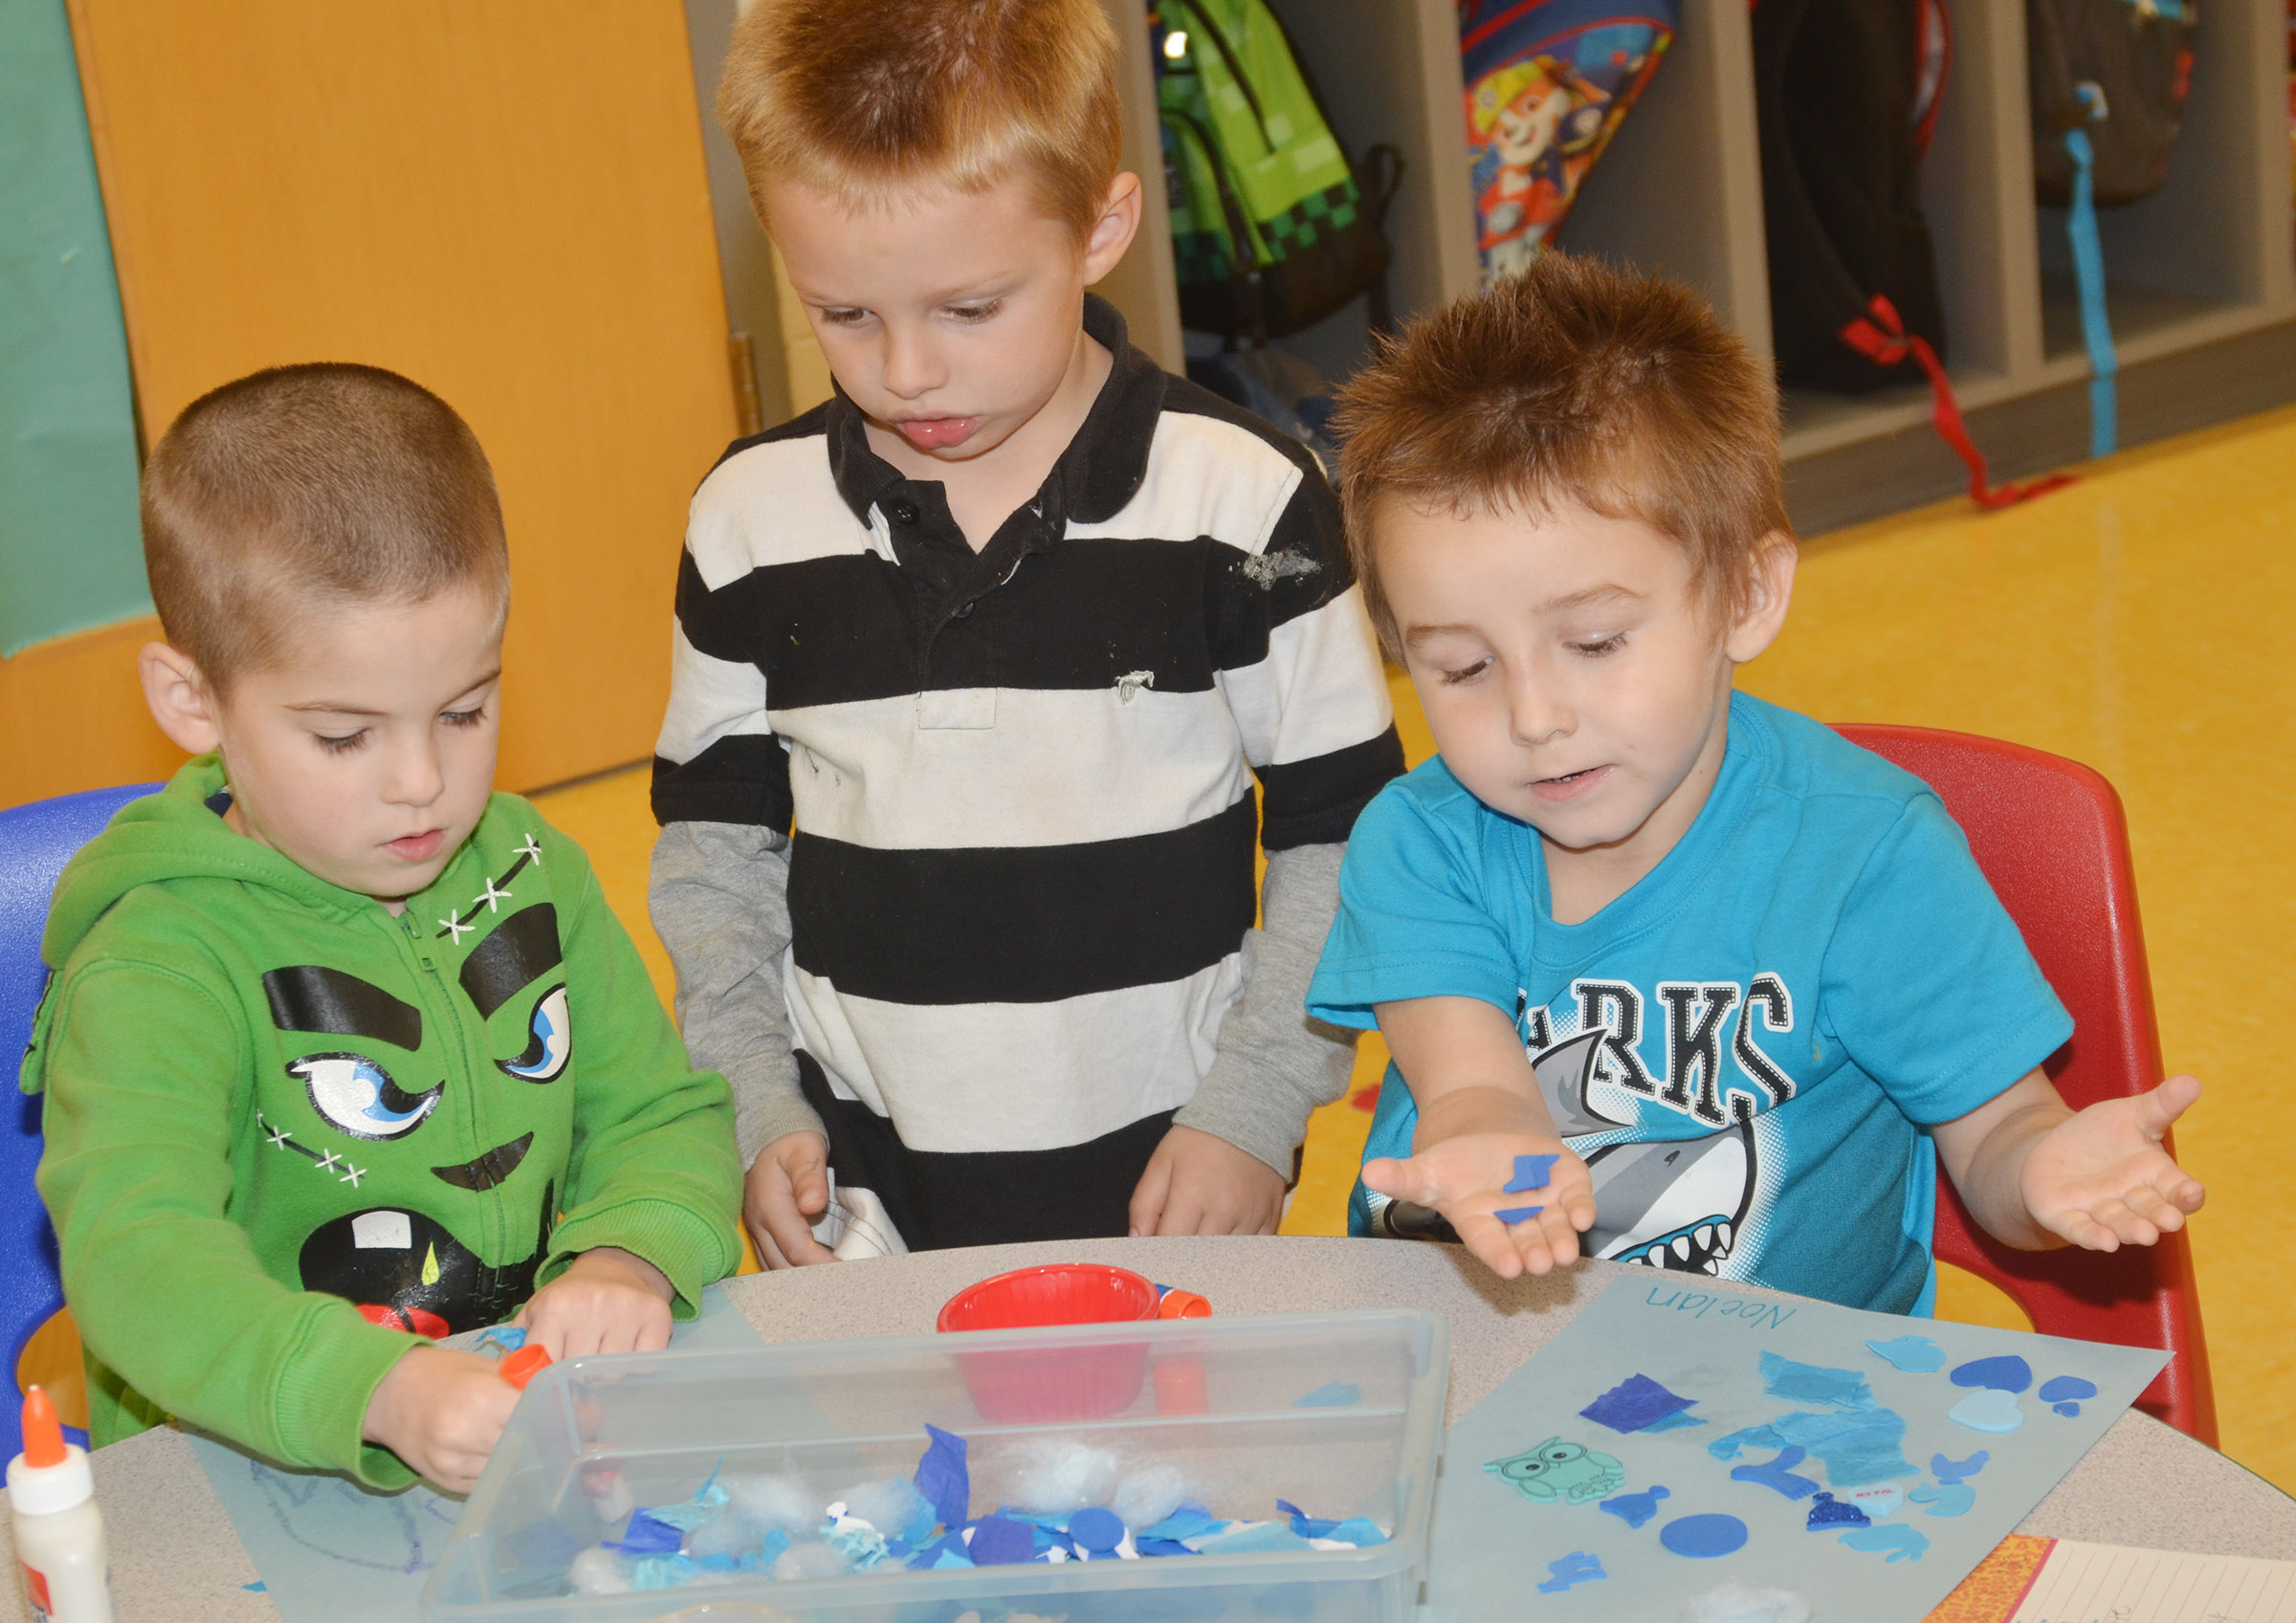 From left, CES preschool students Charlie Woodbury, Nevon Stum and Noelan McMahan work on their collages.